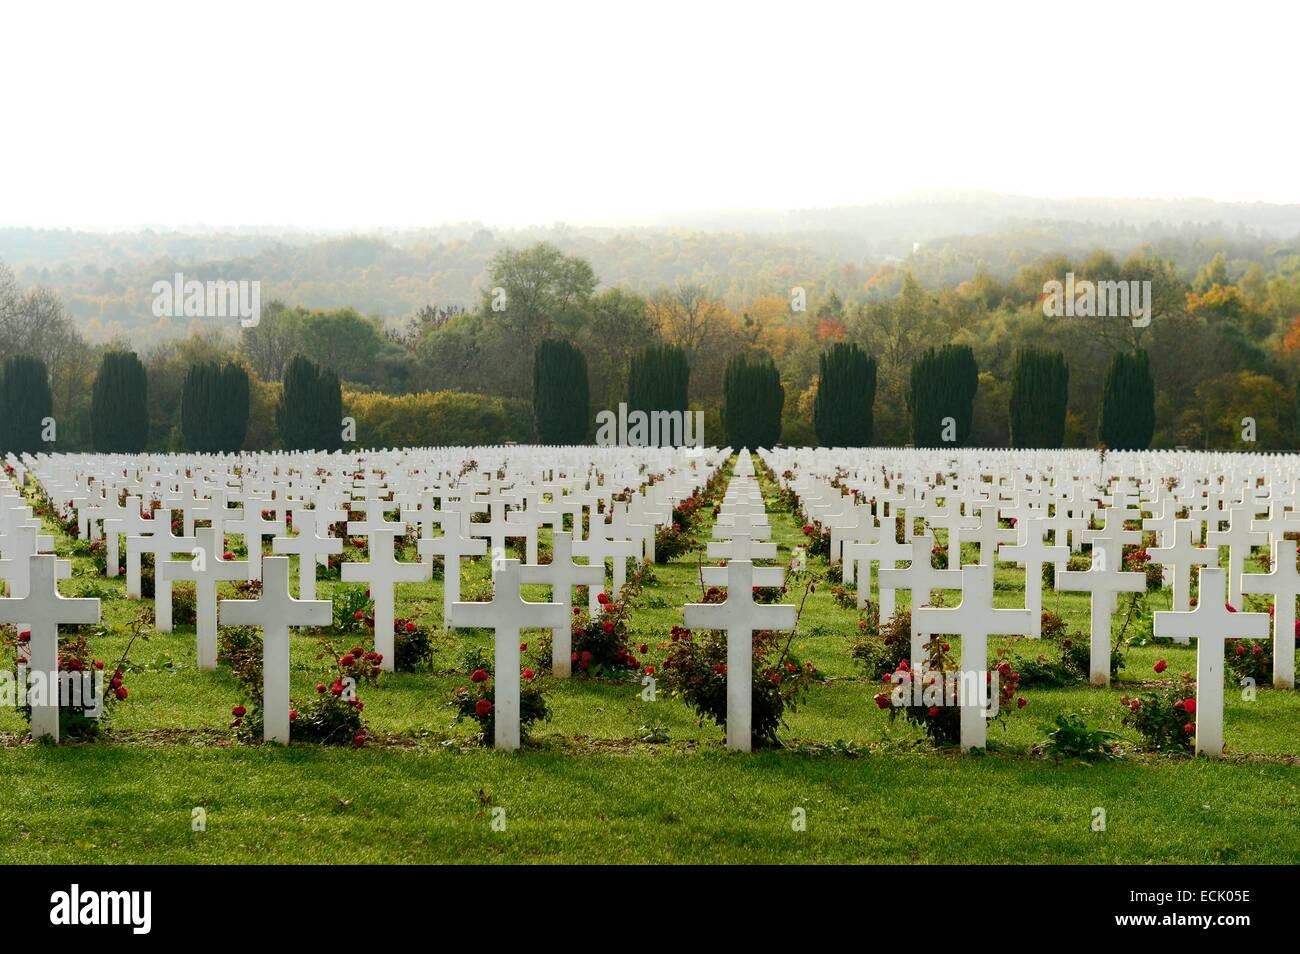 France, Meuse, Douaumont, battle of Verdun, ossuary of Douaumont, national necropolis - Stock Image